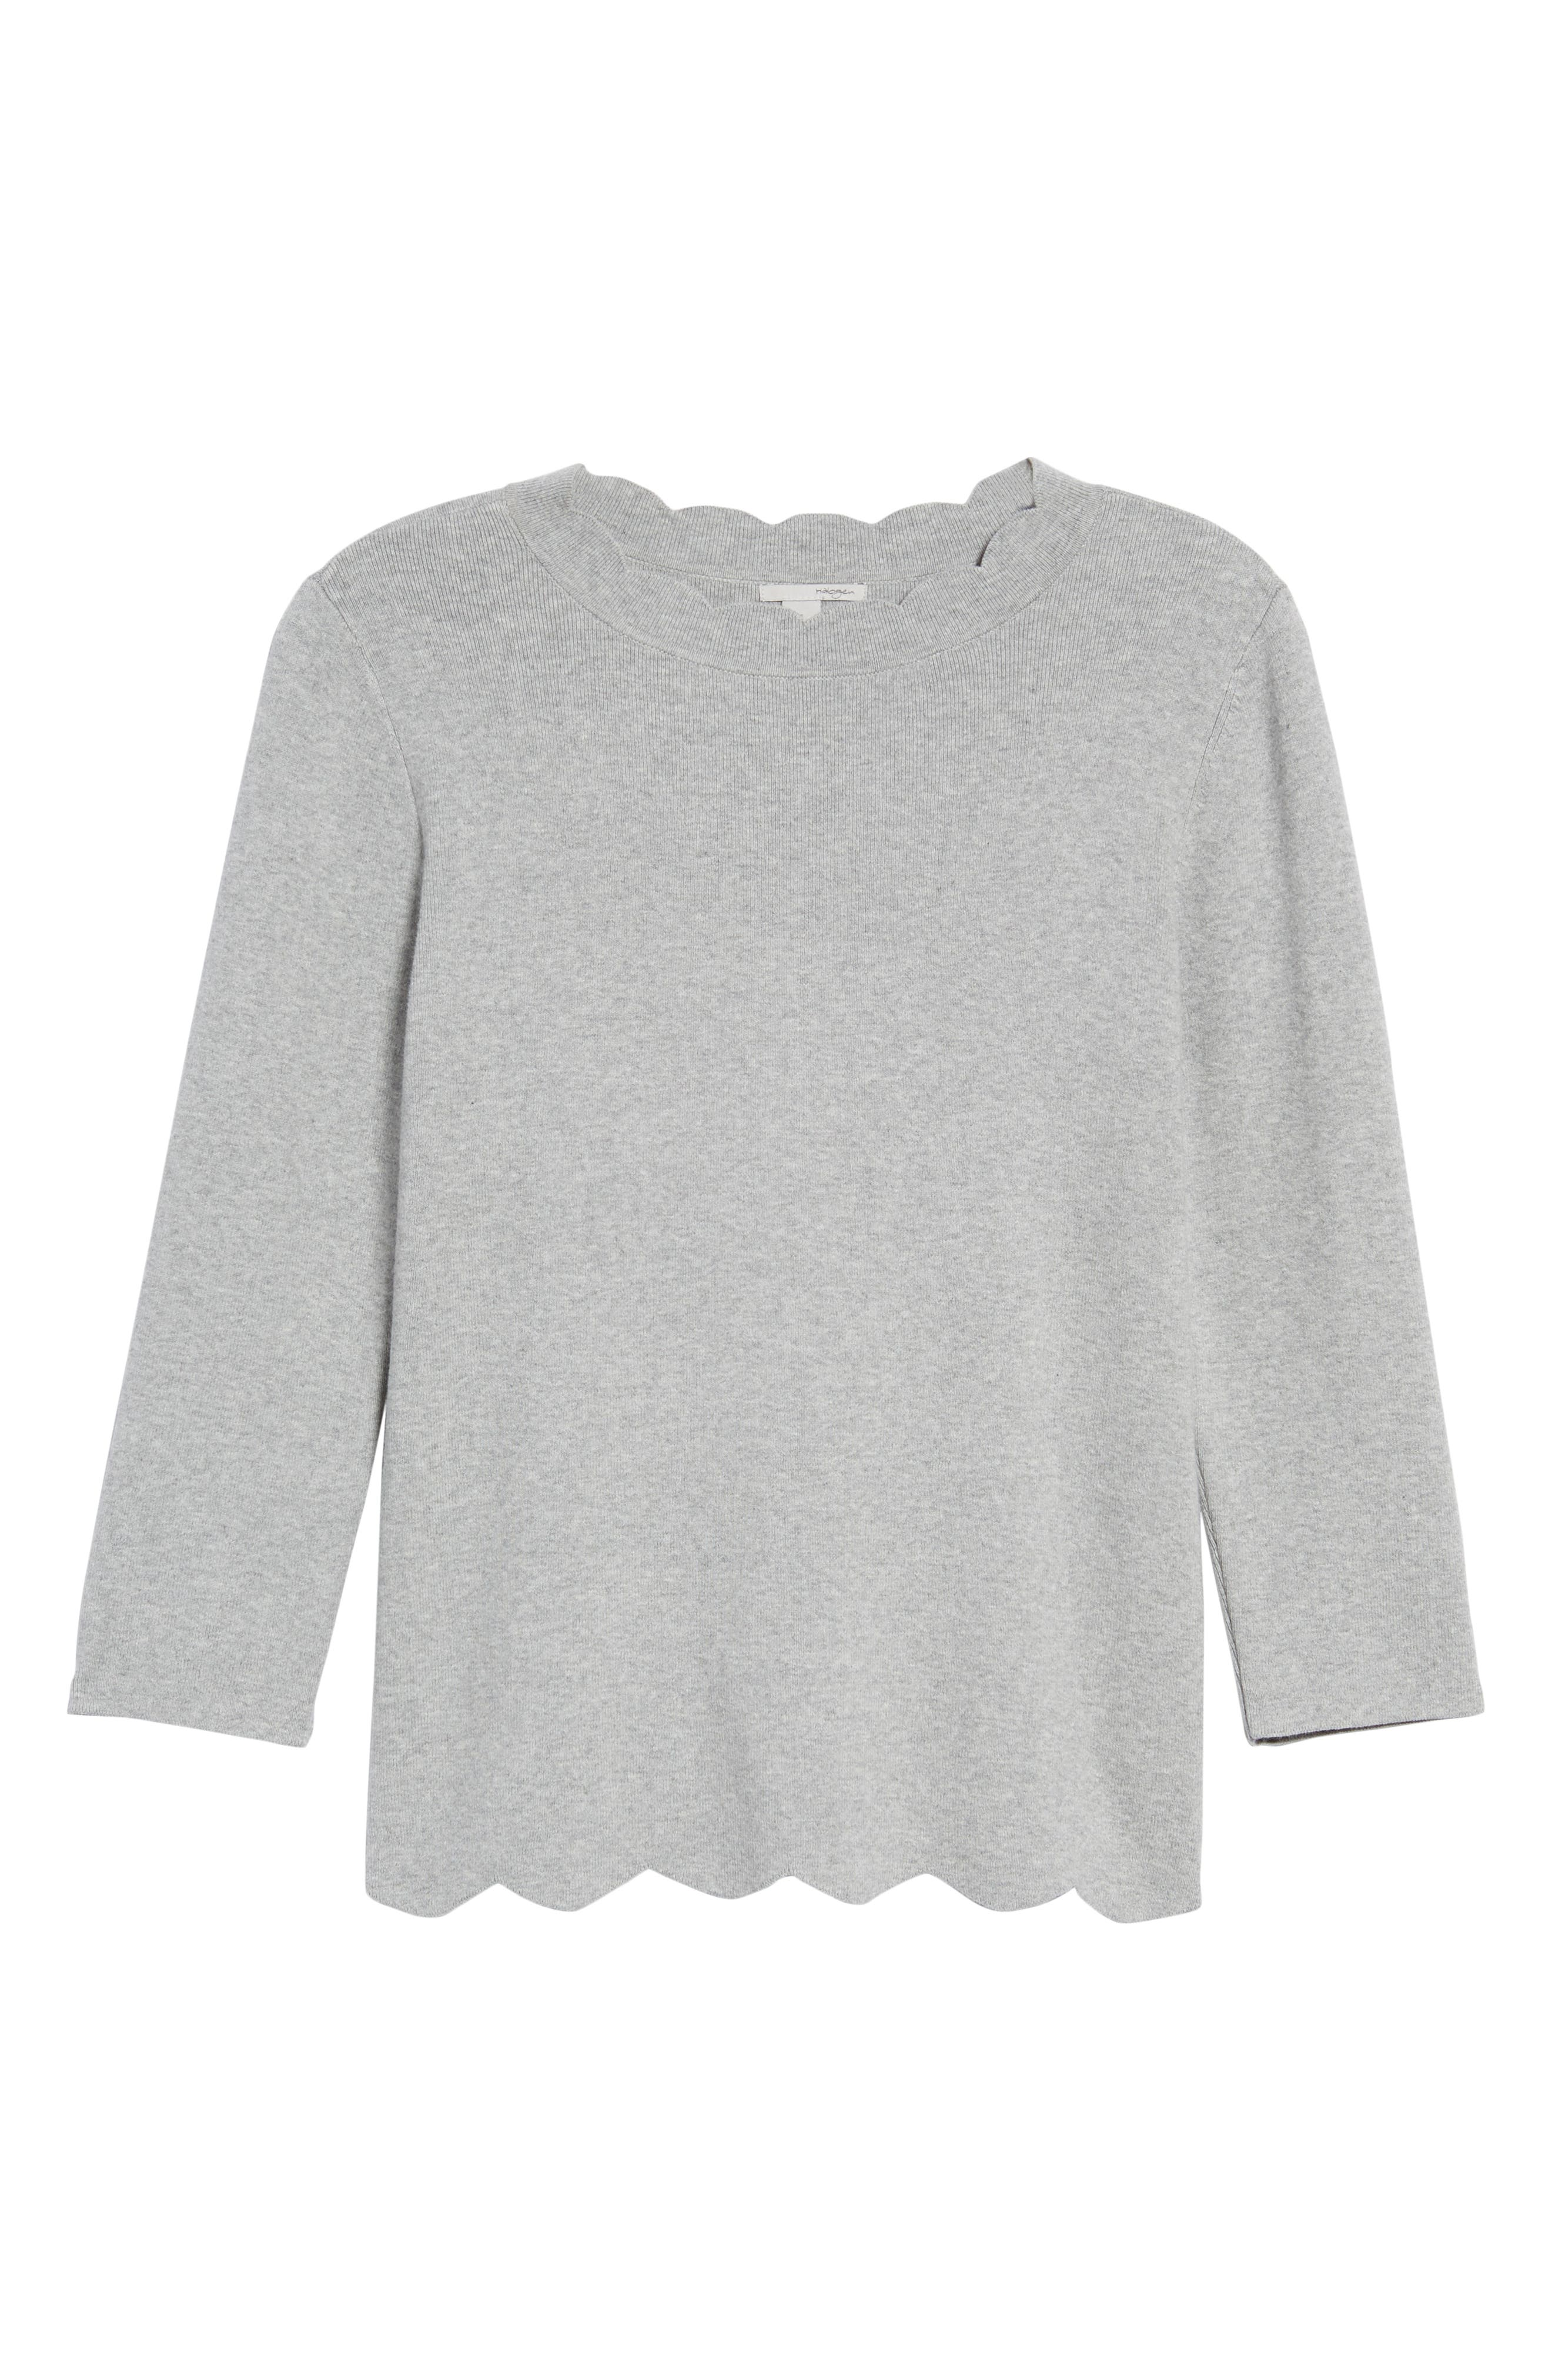 Halogen Scallop Edge Sweater,                             Alternate thumbnail 6, color,                             030